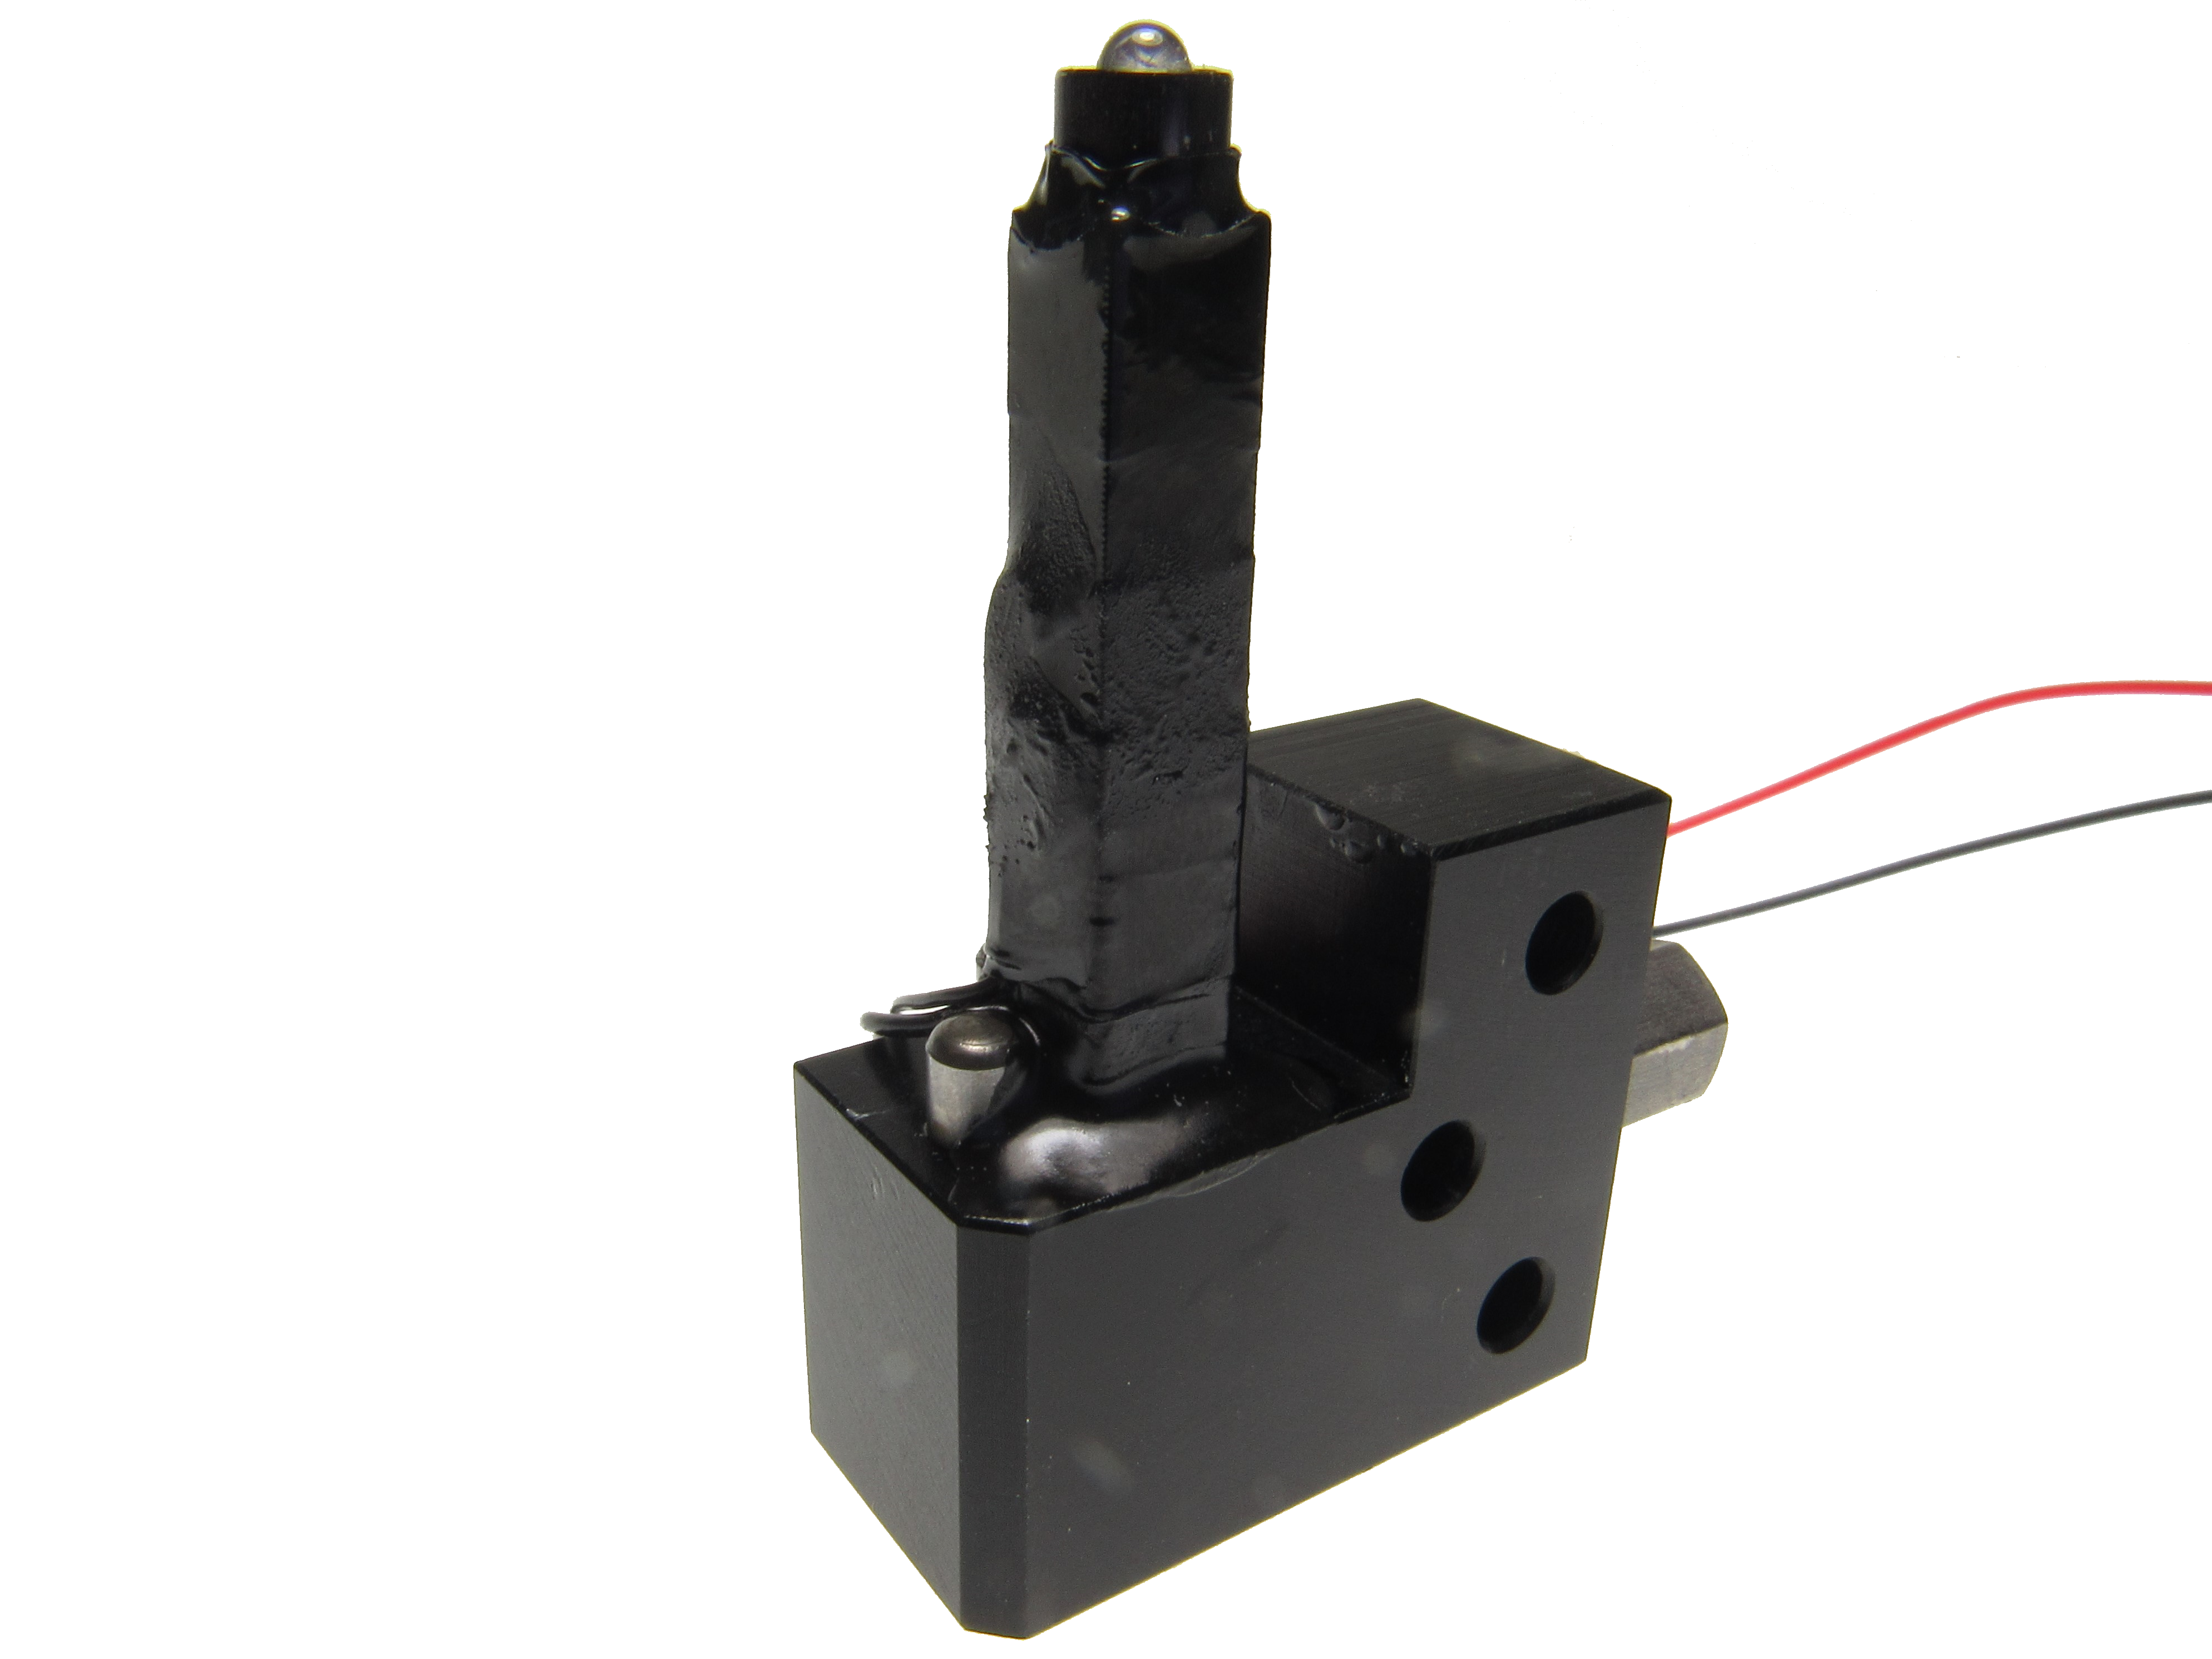 Piezo actuator repaired by Dynamic Structures & Materials